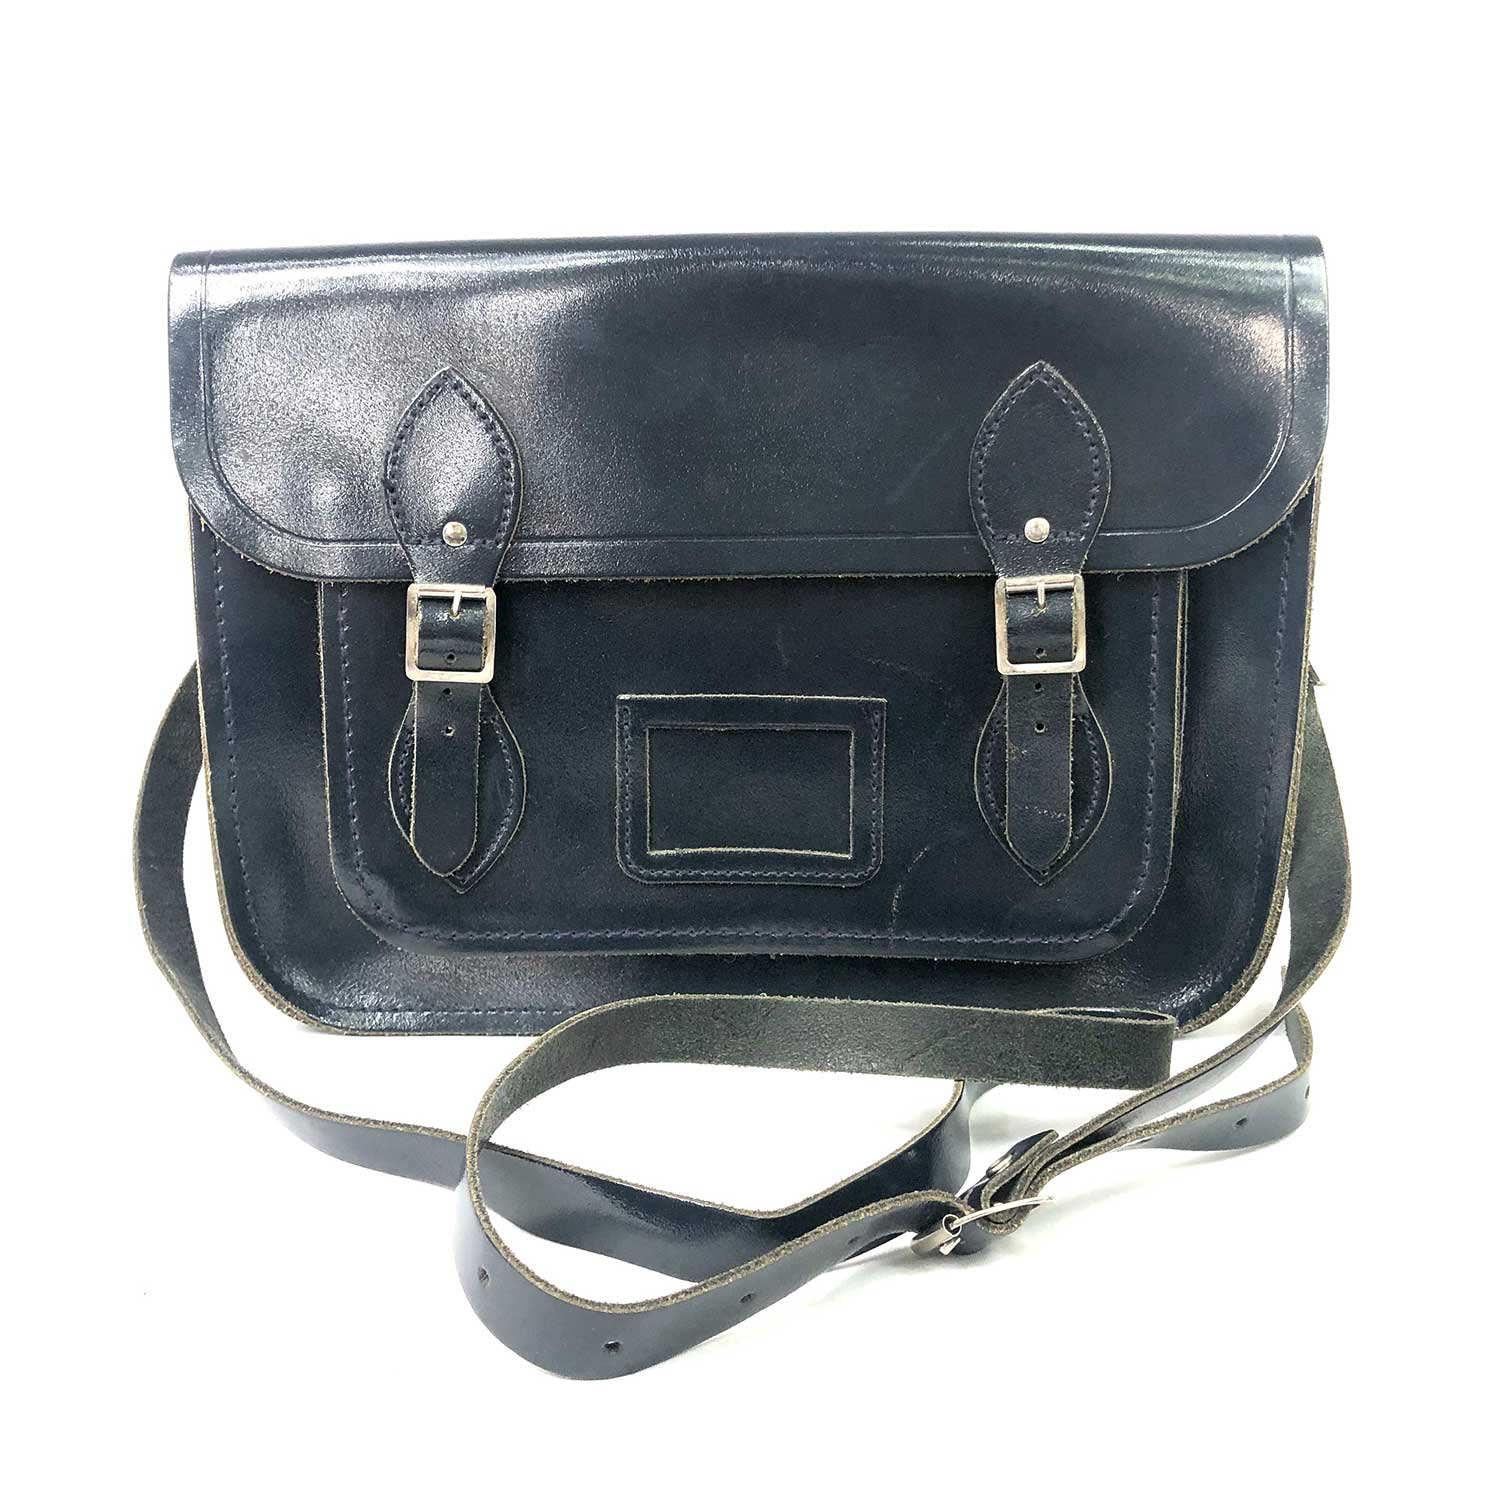 Bolsa The Cambridge Satchel Co. Marinho